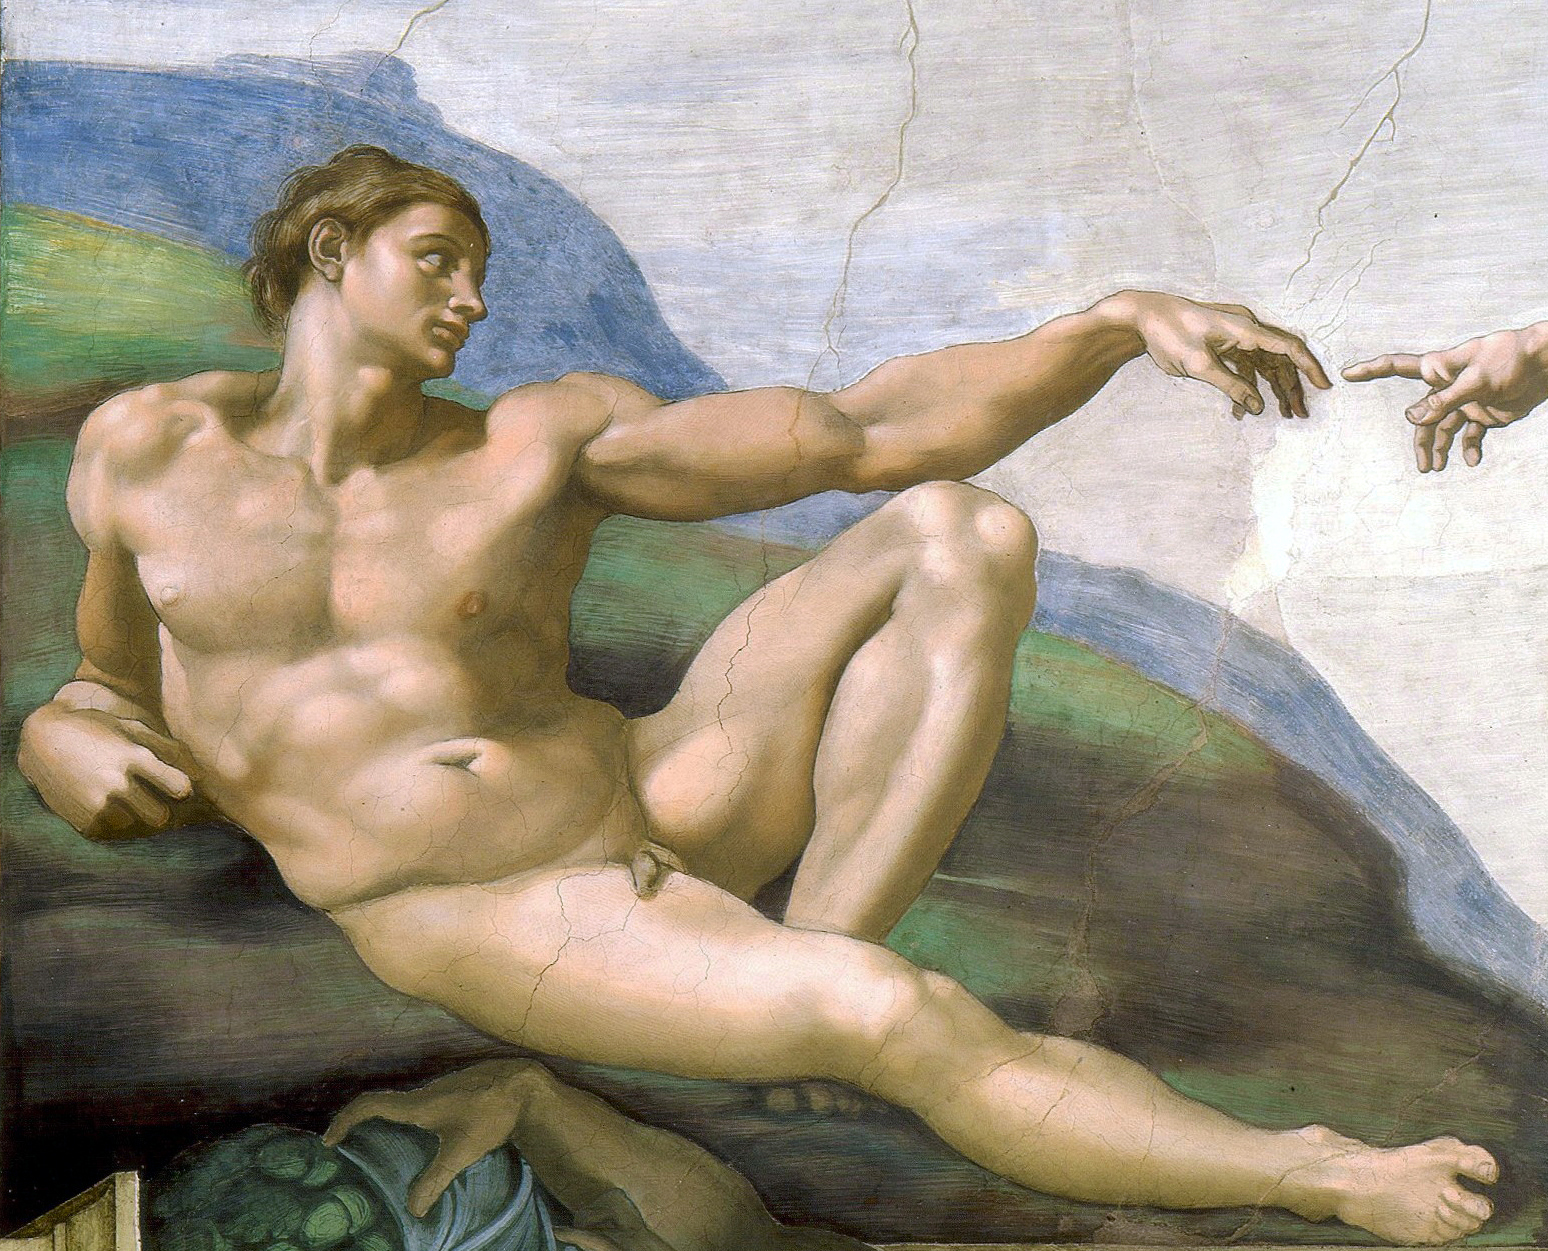 https://upload.wikimedia.org/wikipedia/commons/d/d3/Michelangelo_Buonarroti_017.jpg